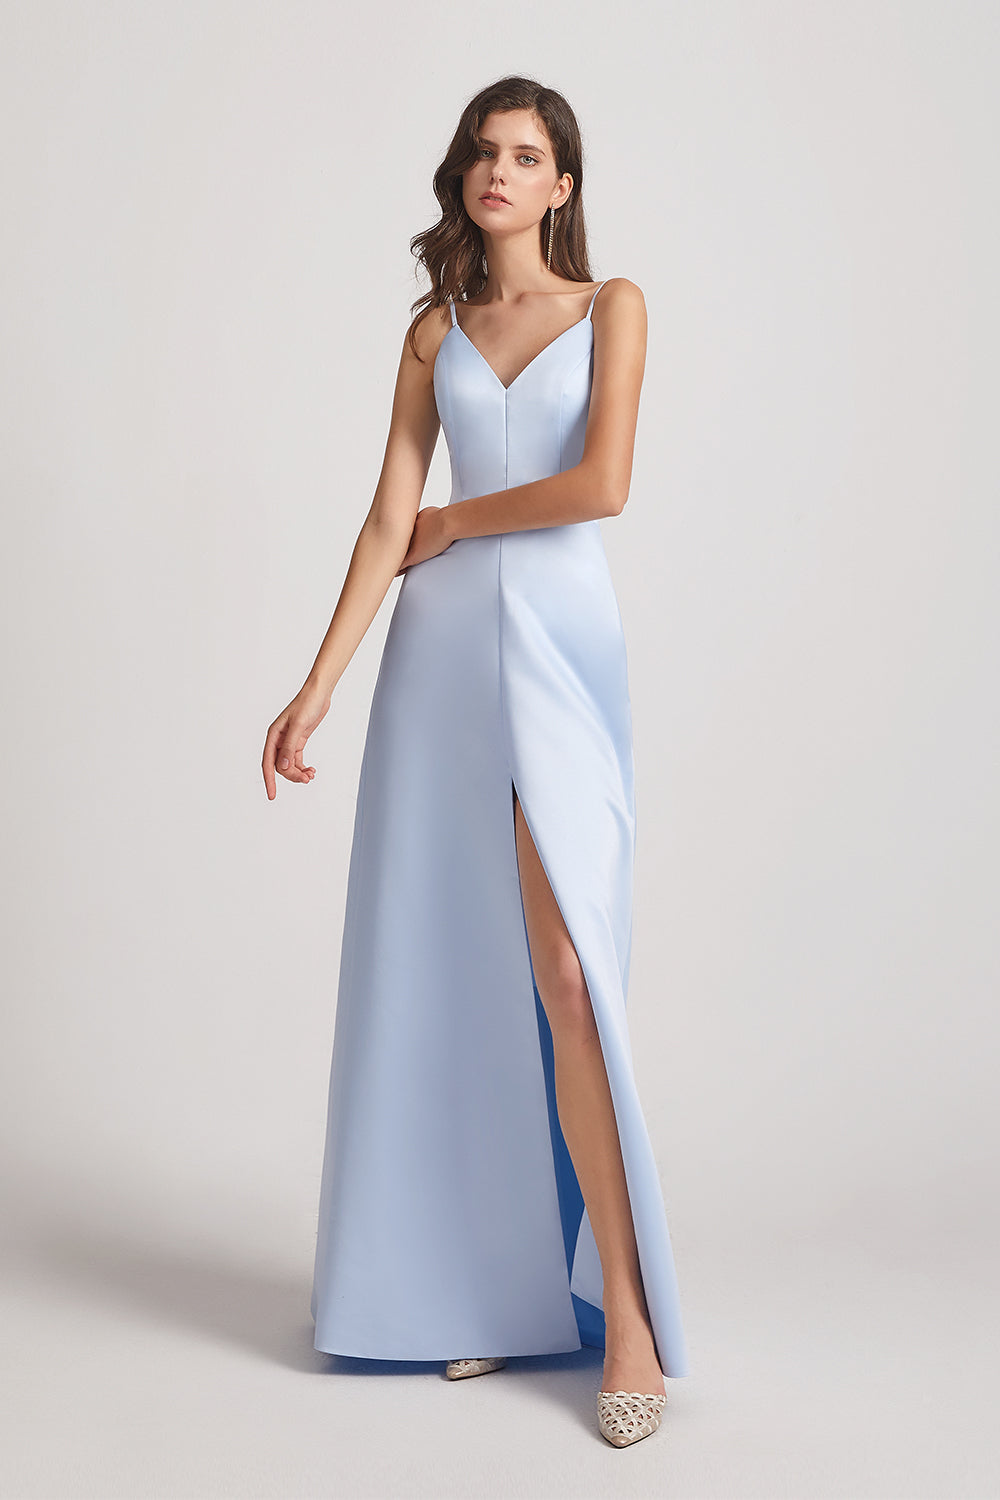 v-neck sleeveless cheap satin gowns